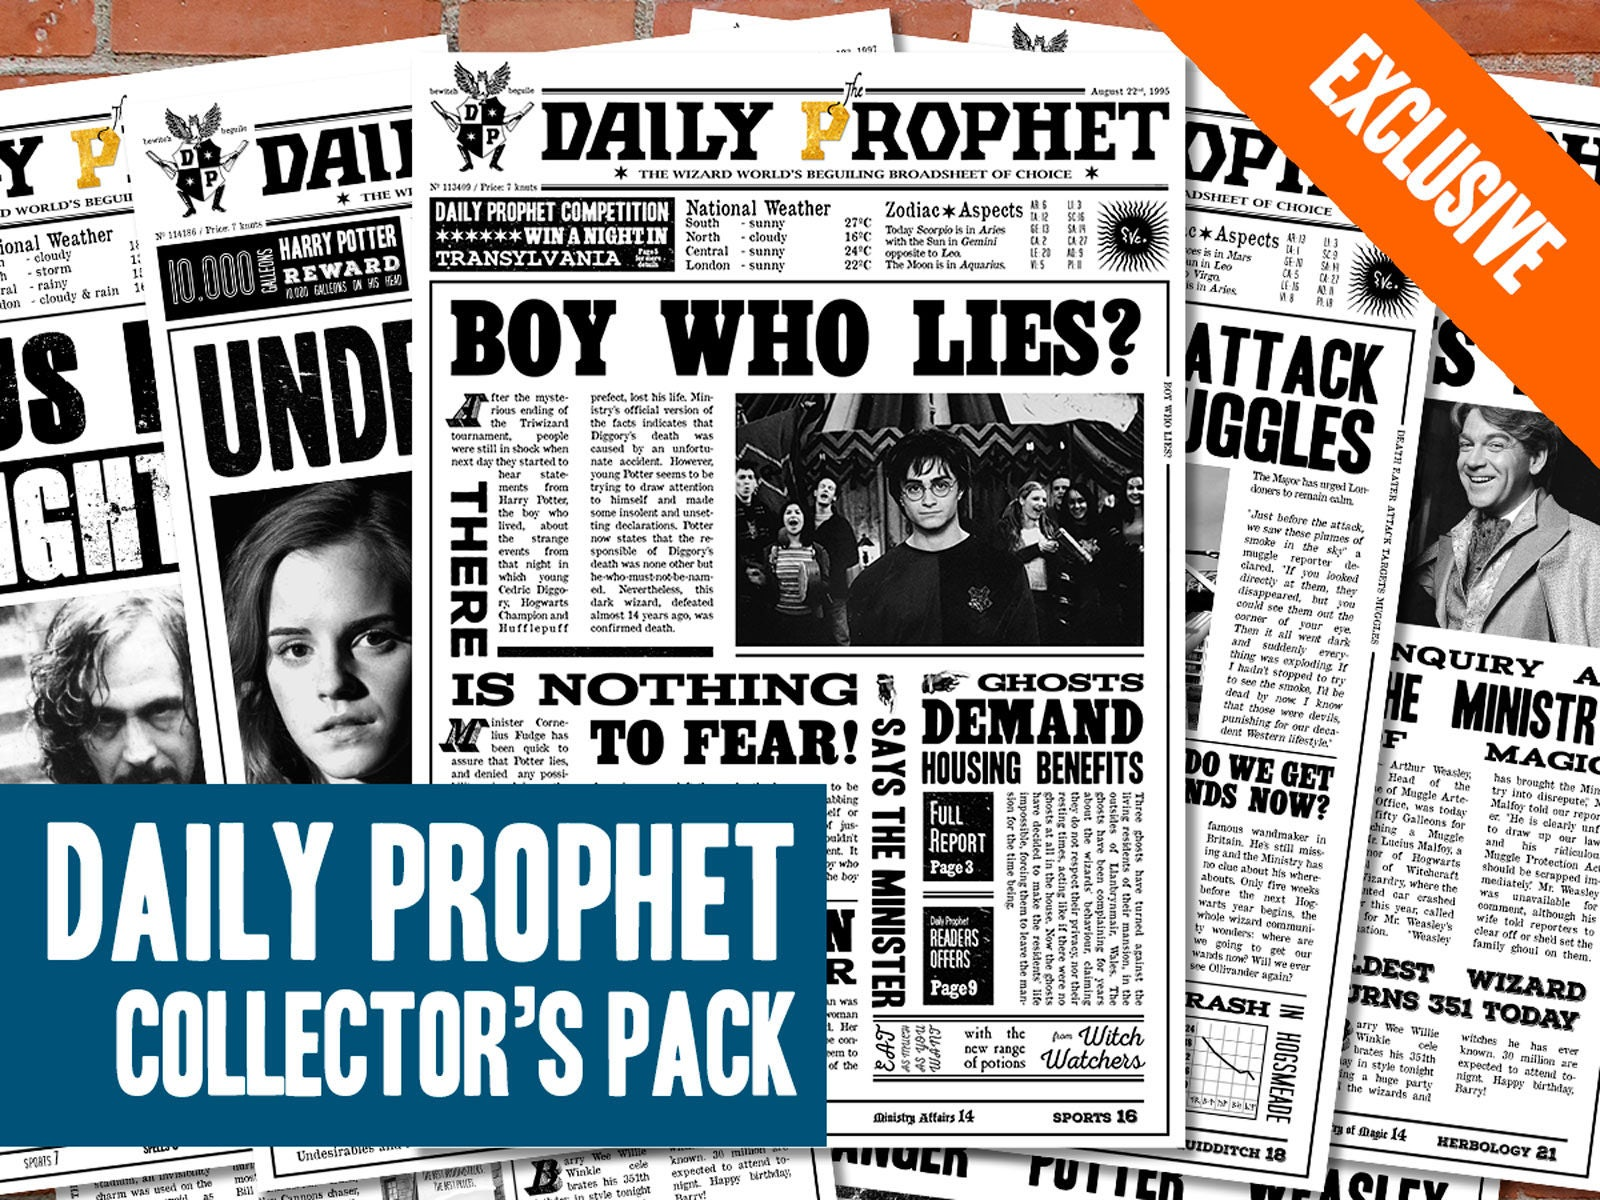 It's just an image of Sly Harry Potter Daily Prophet Printable